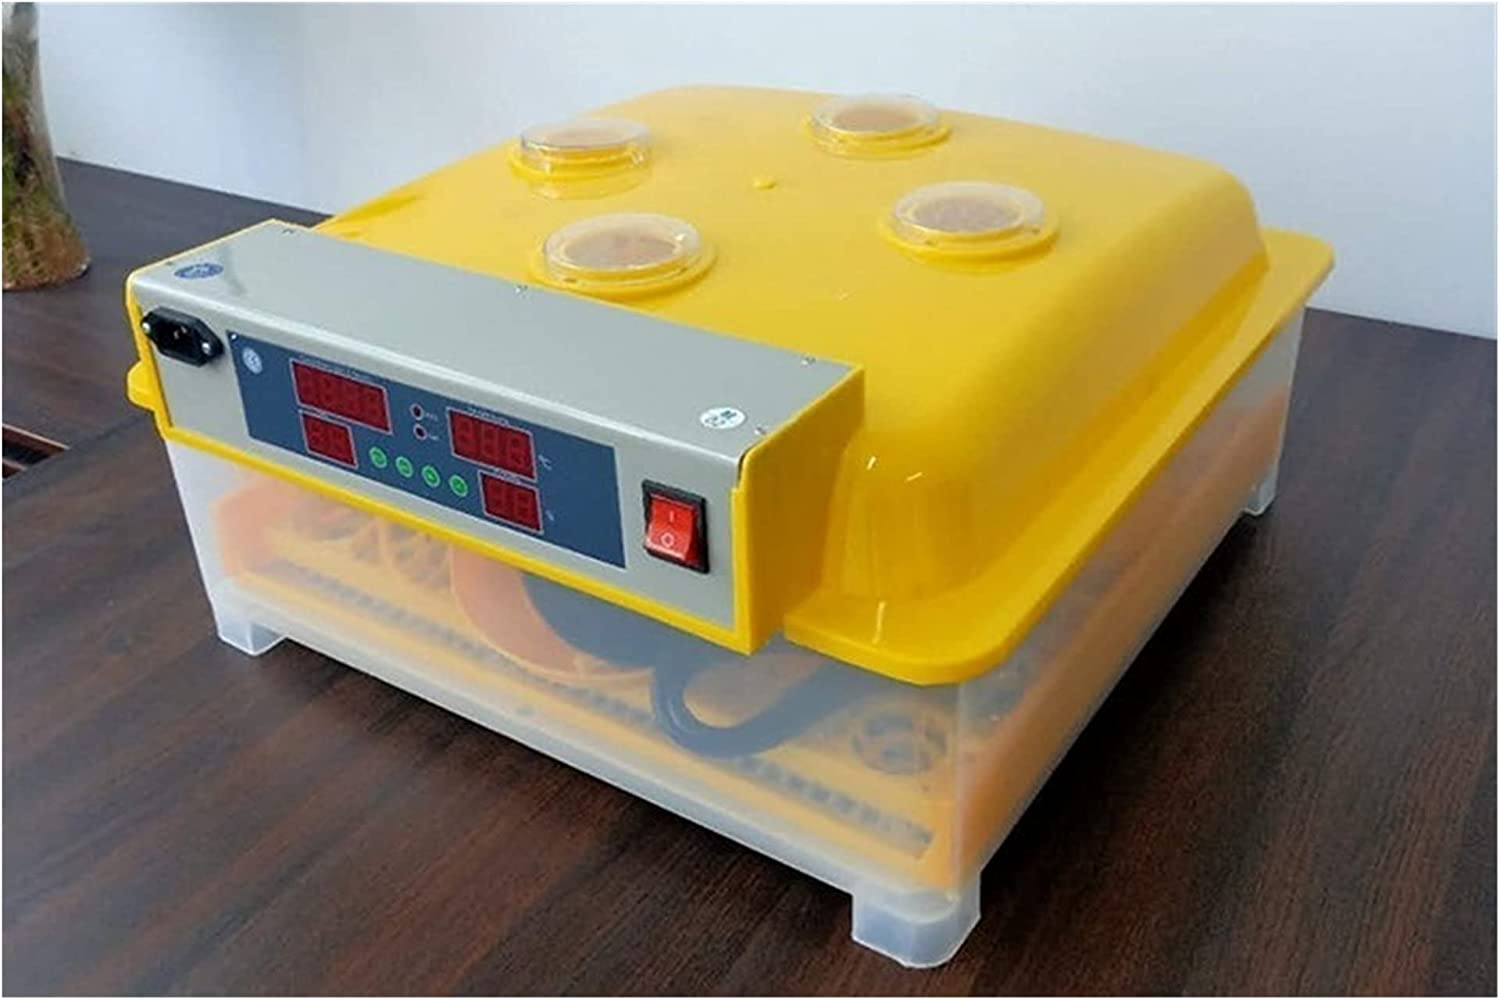 HUACHEN-LS Super sale Ranking TOP7 Automatic Egg Incubator Household Small 24